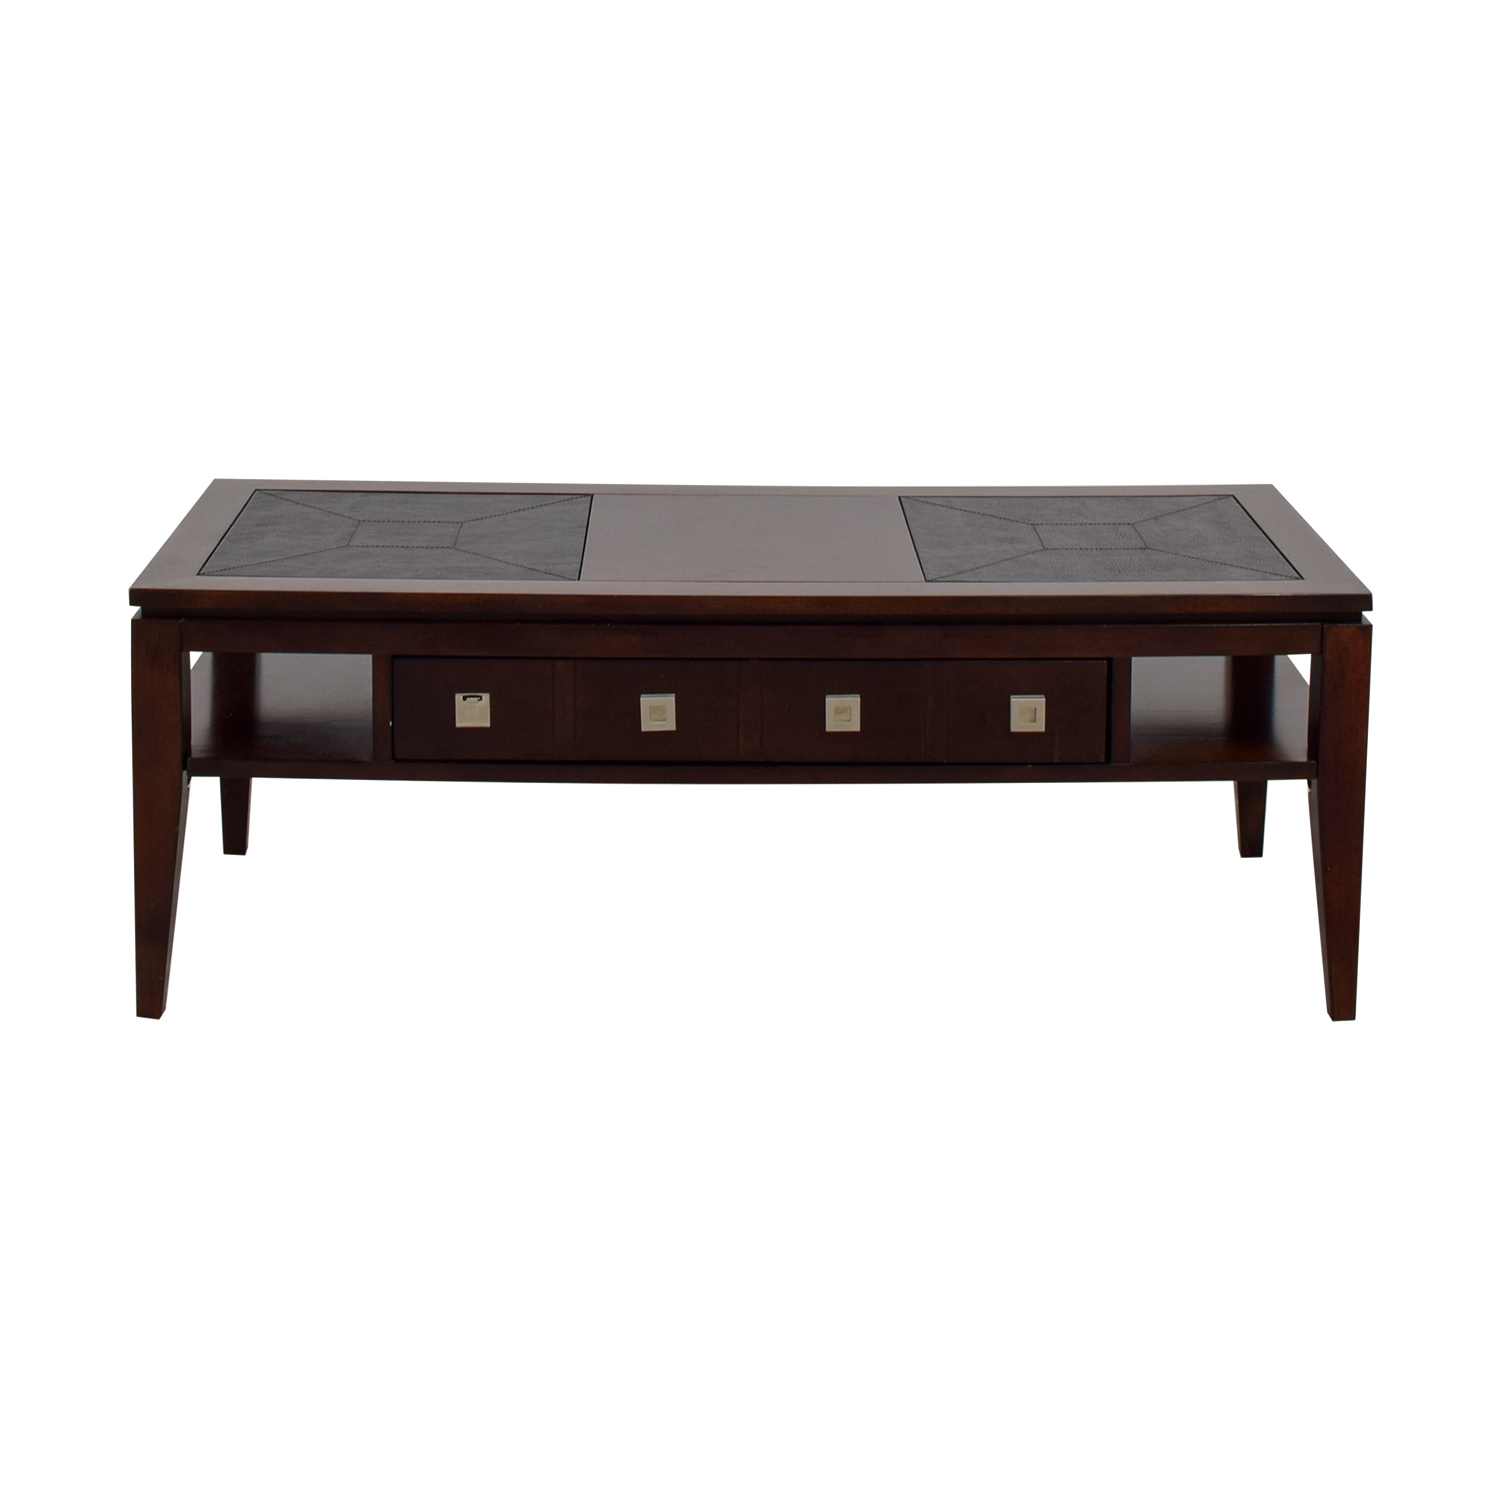 55 Off Raymour Flanigan Single Drawer Coffee Table Tables